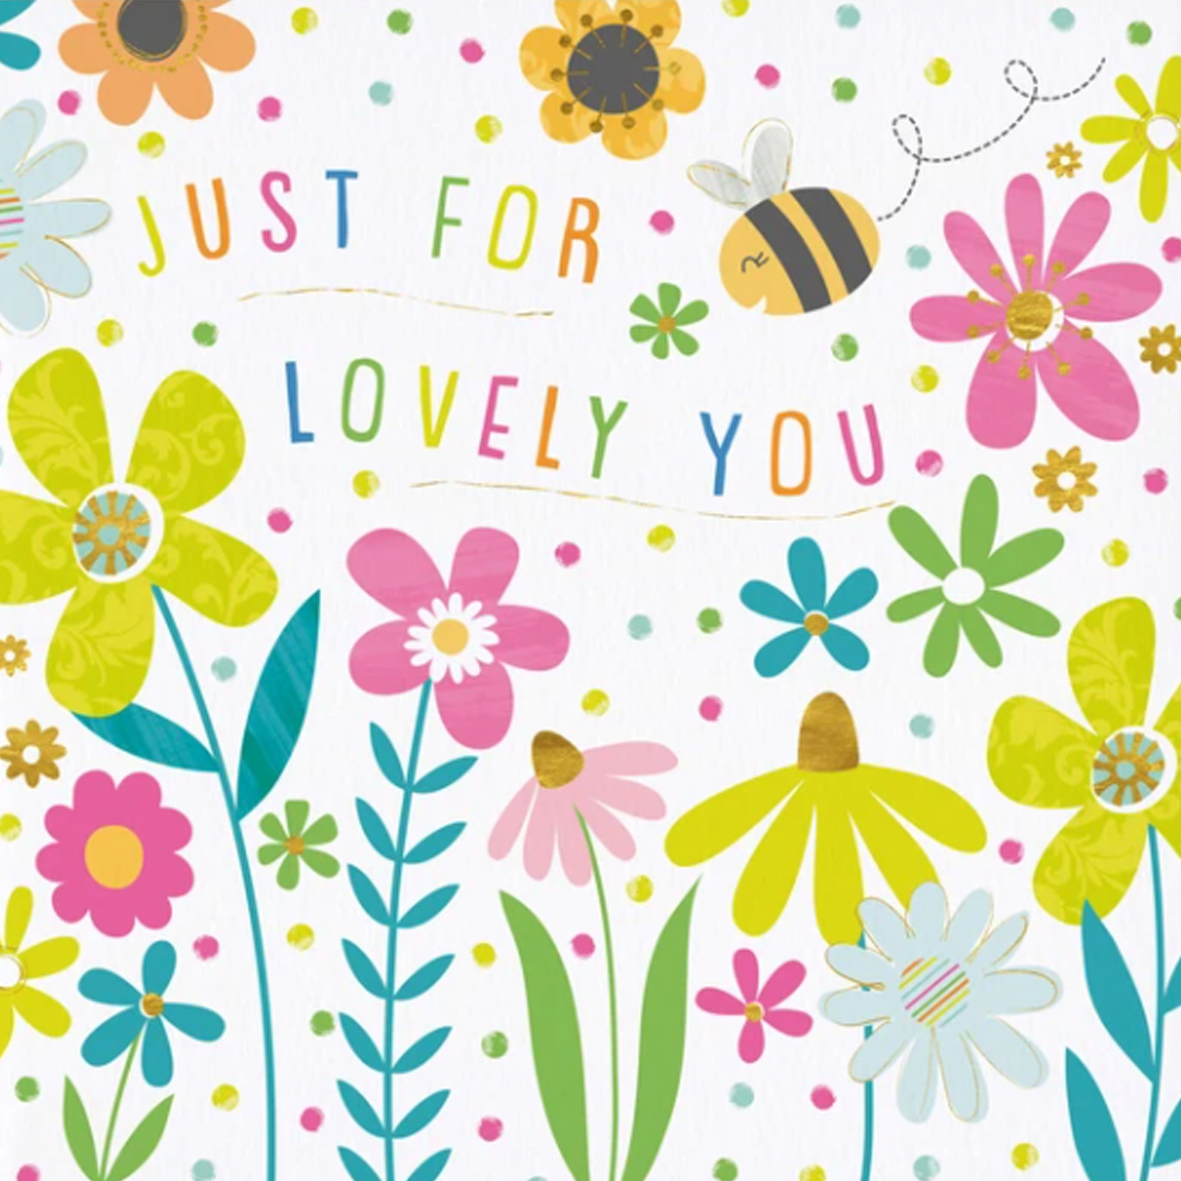 Just For Lovely You Greeting Card